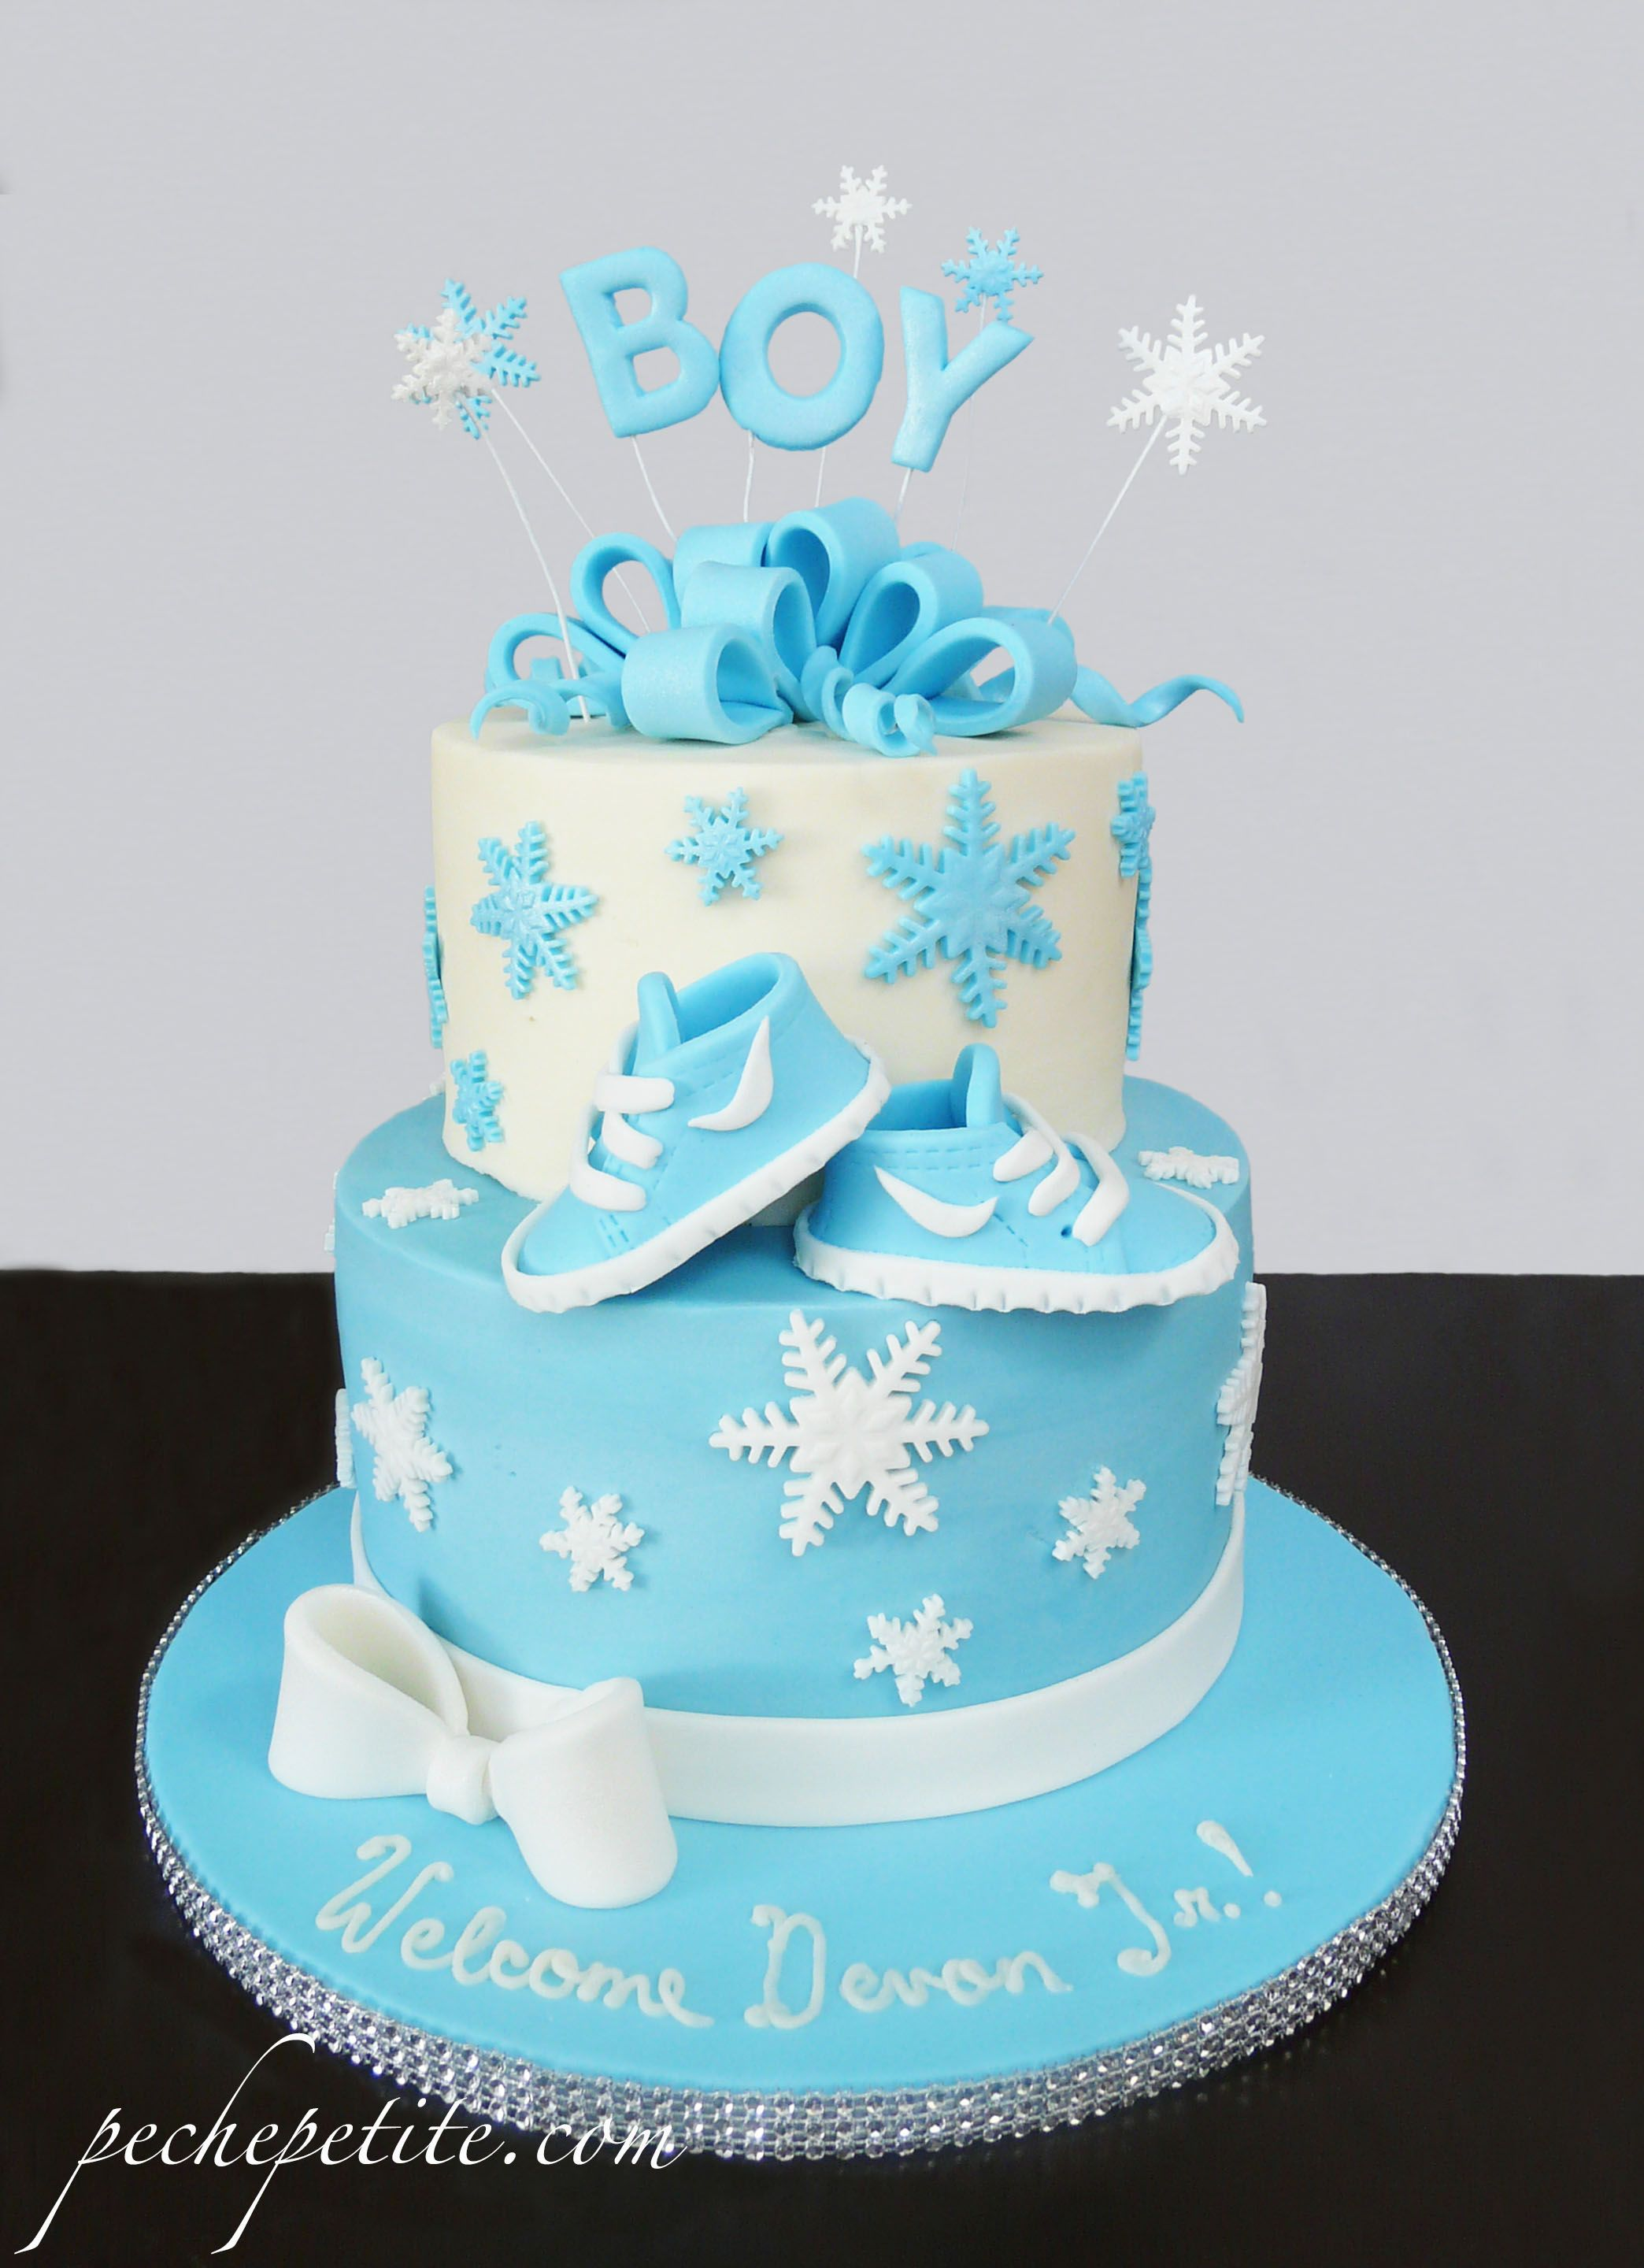 Dazzling Winter Med Baby Boy Shower Cake Winter Med Baby Boy Shower Cake Pche Petite Baby Shower Cakes Baby Boy Shower Cakes Deer Baby Boy Shower Cakes Nautical